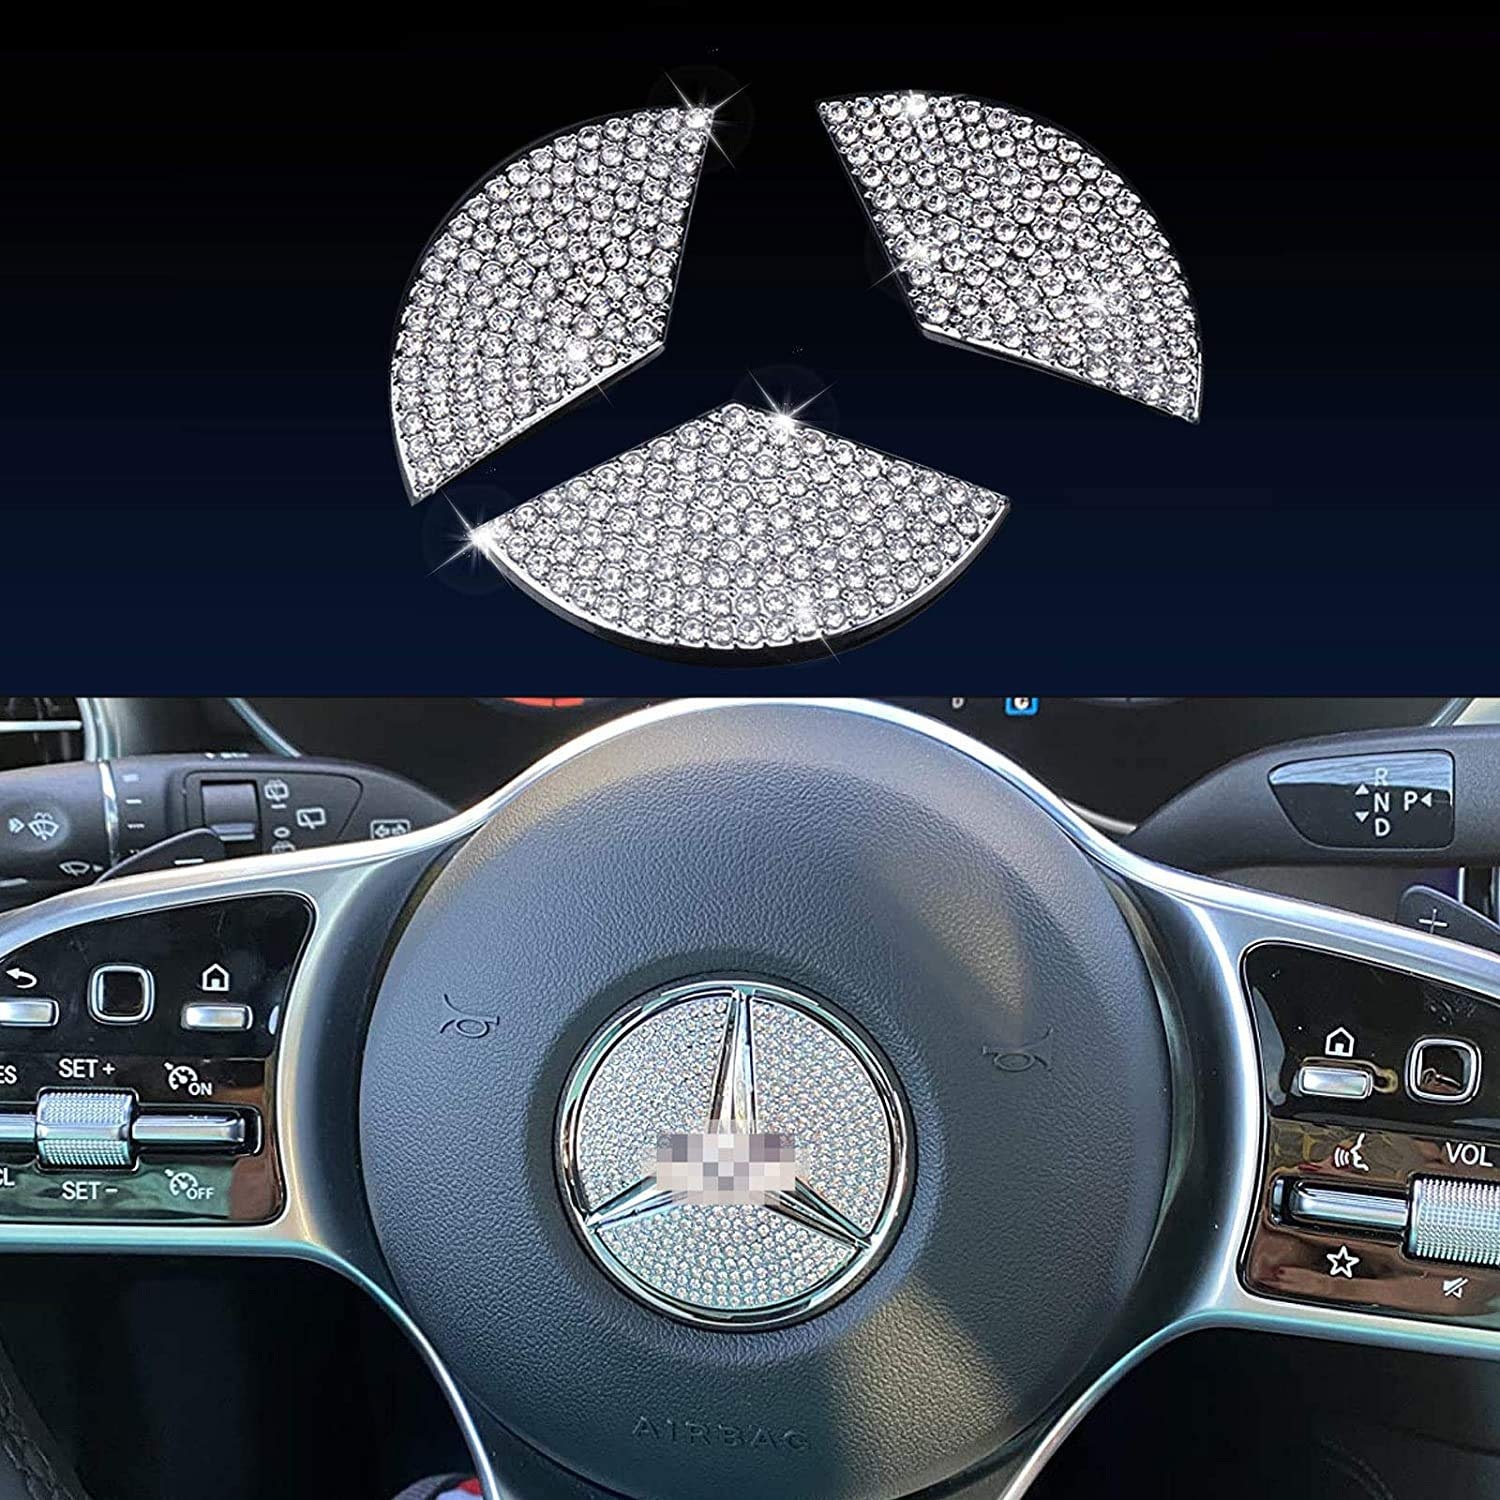 MIUOPUR Steering Wheel Logo Caps for Audi Accessory Parts. Bling Diamond Crystal Emblem Sticker, Interior Decorations Badge Covers. Suitable for Audi A3 A4 A5 A6 Q5 Q7 (Fit for Mercedes Benz 45mm)